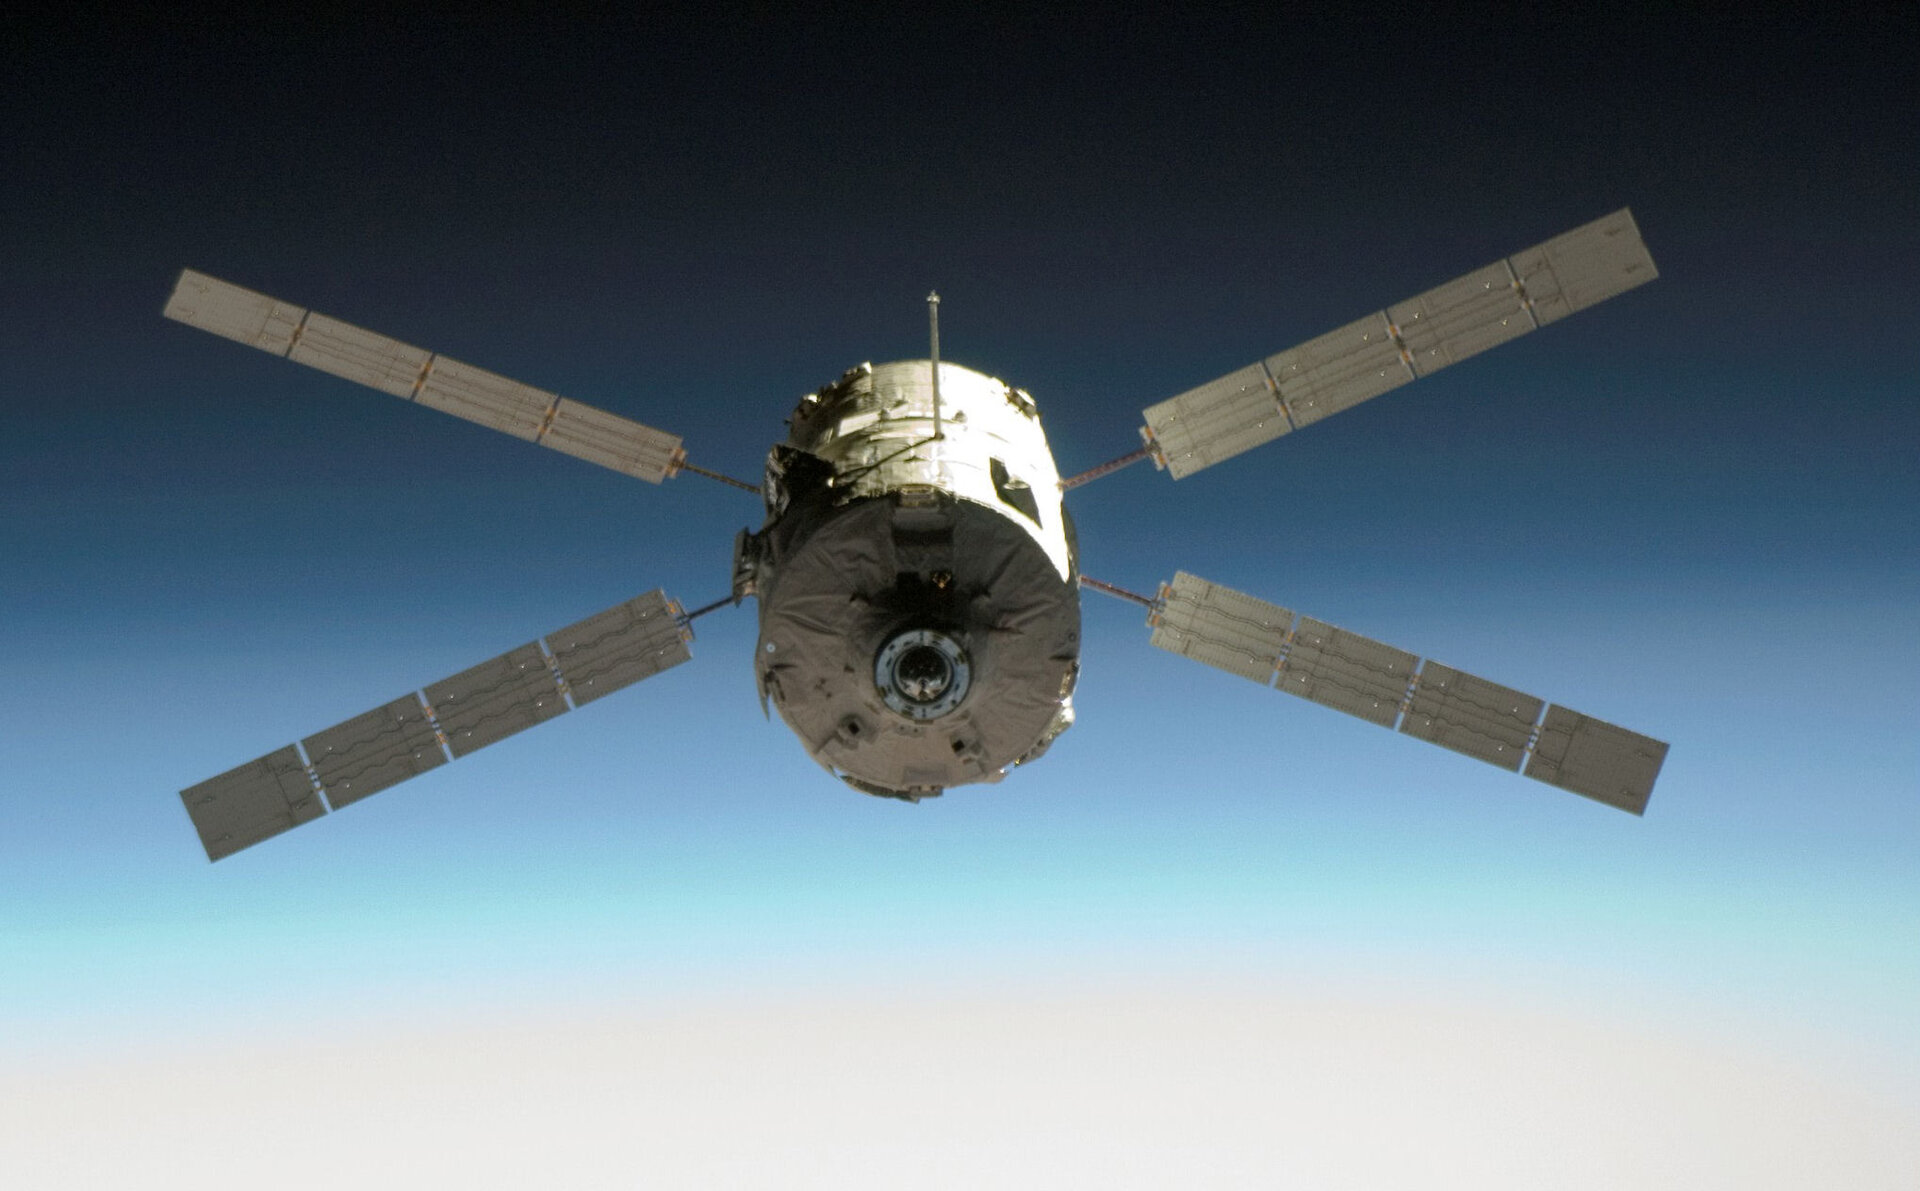 ATV-1 approaching the Station